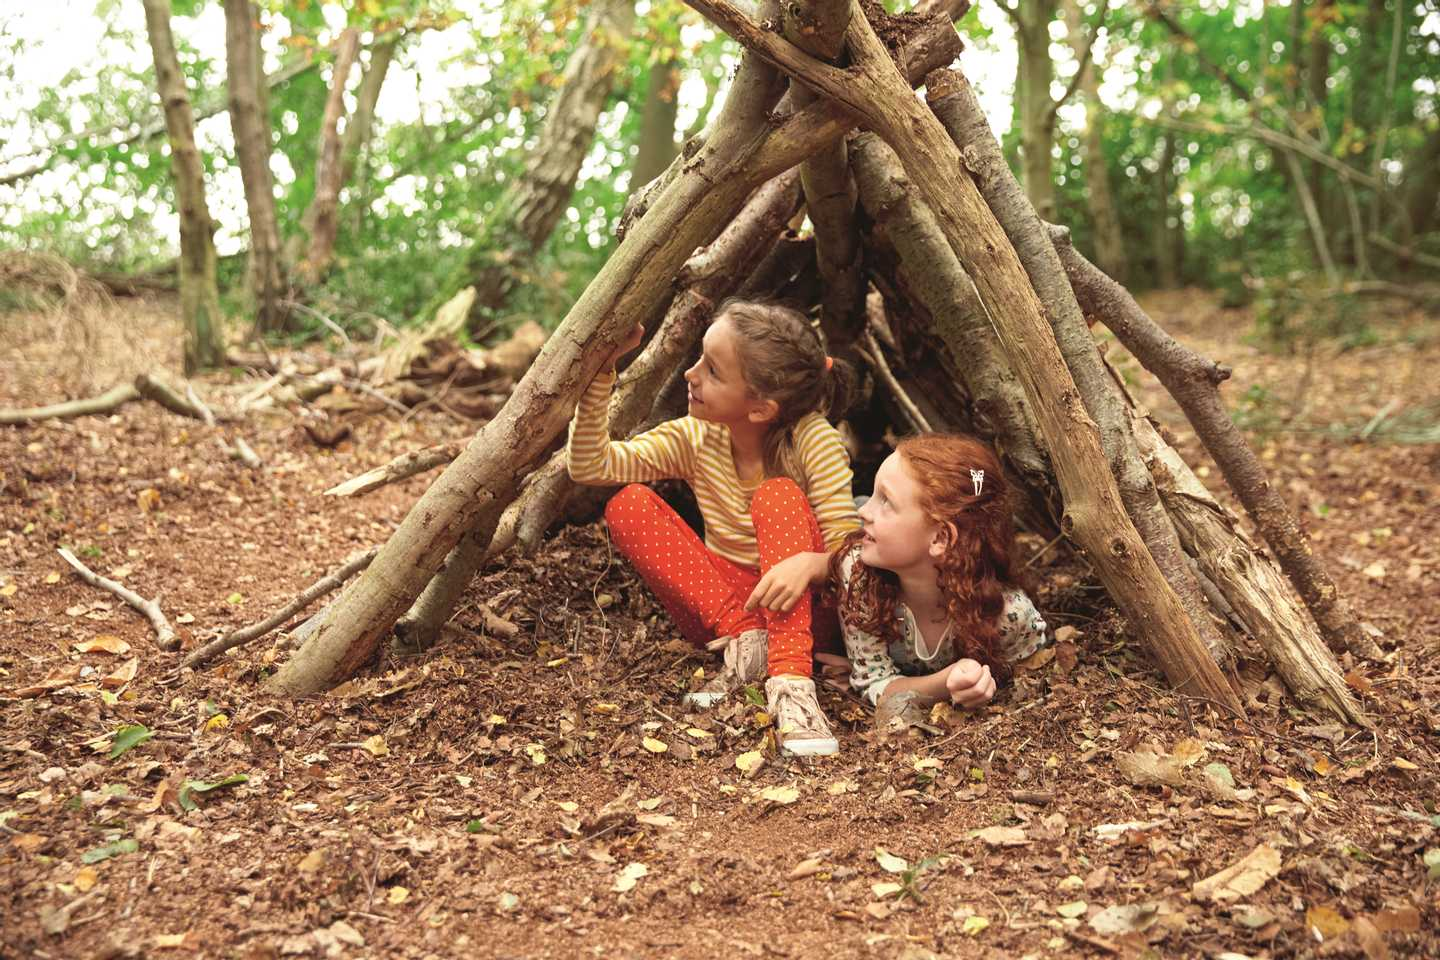 Some children building a den